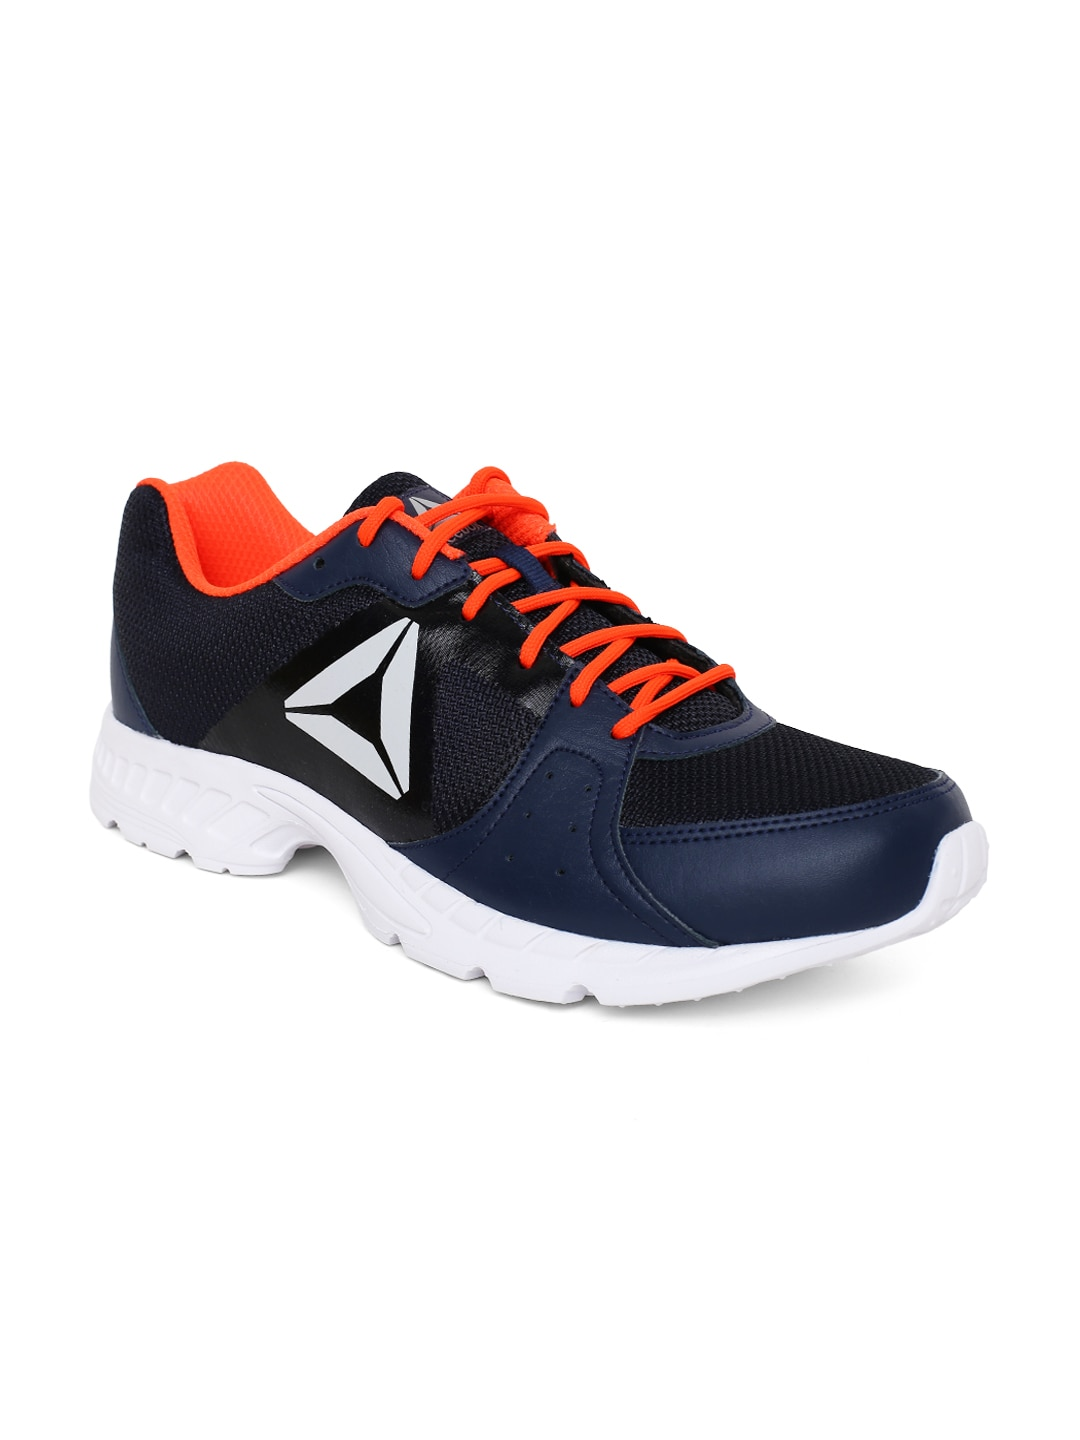 d1ca61ddc58 Reebok Prince Sports Shoes - Buy Reebok Prince Sports Shoes online in India